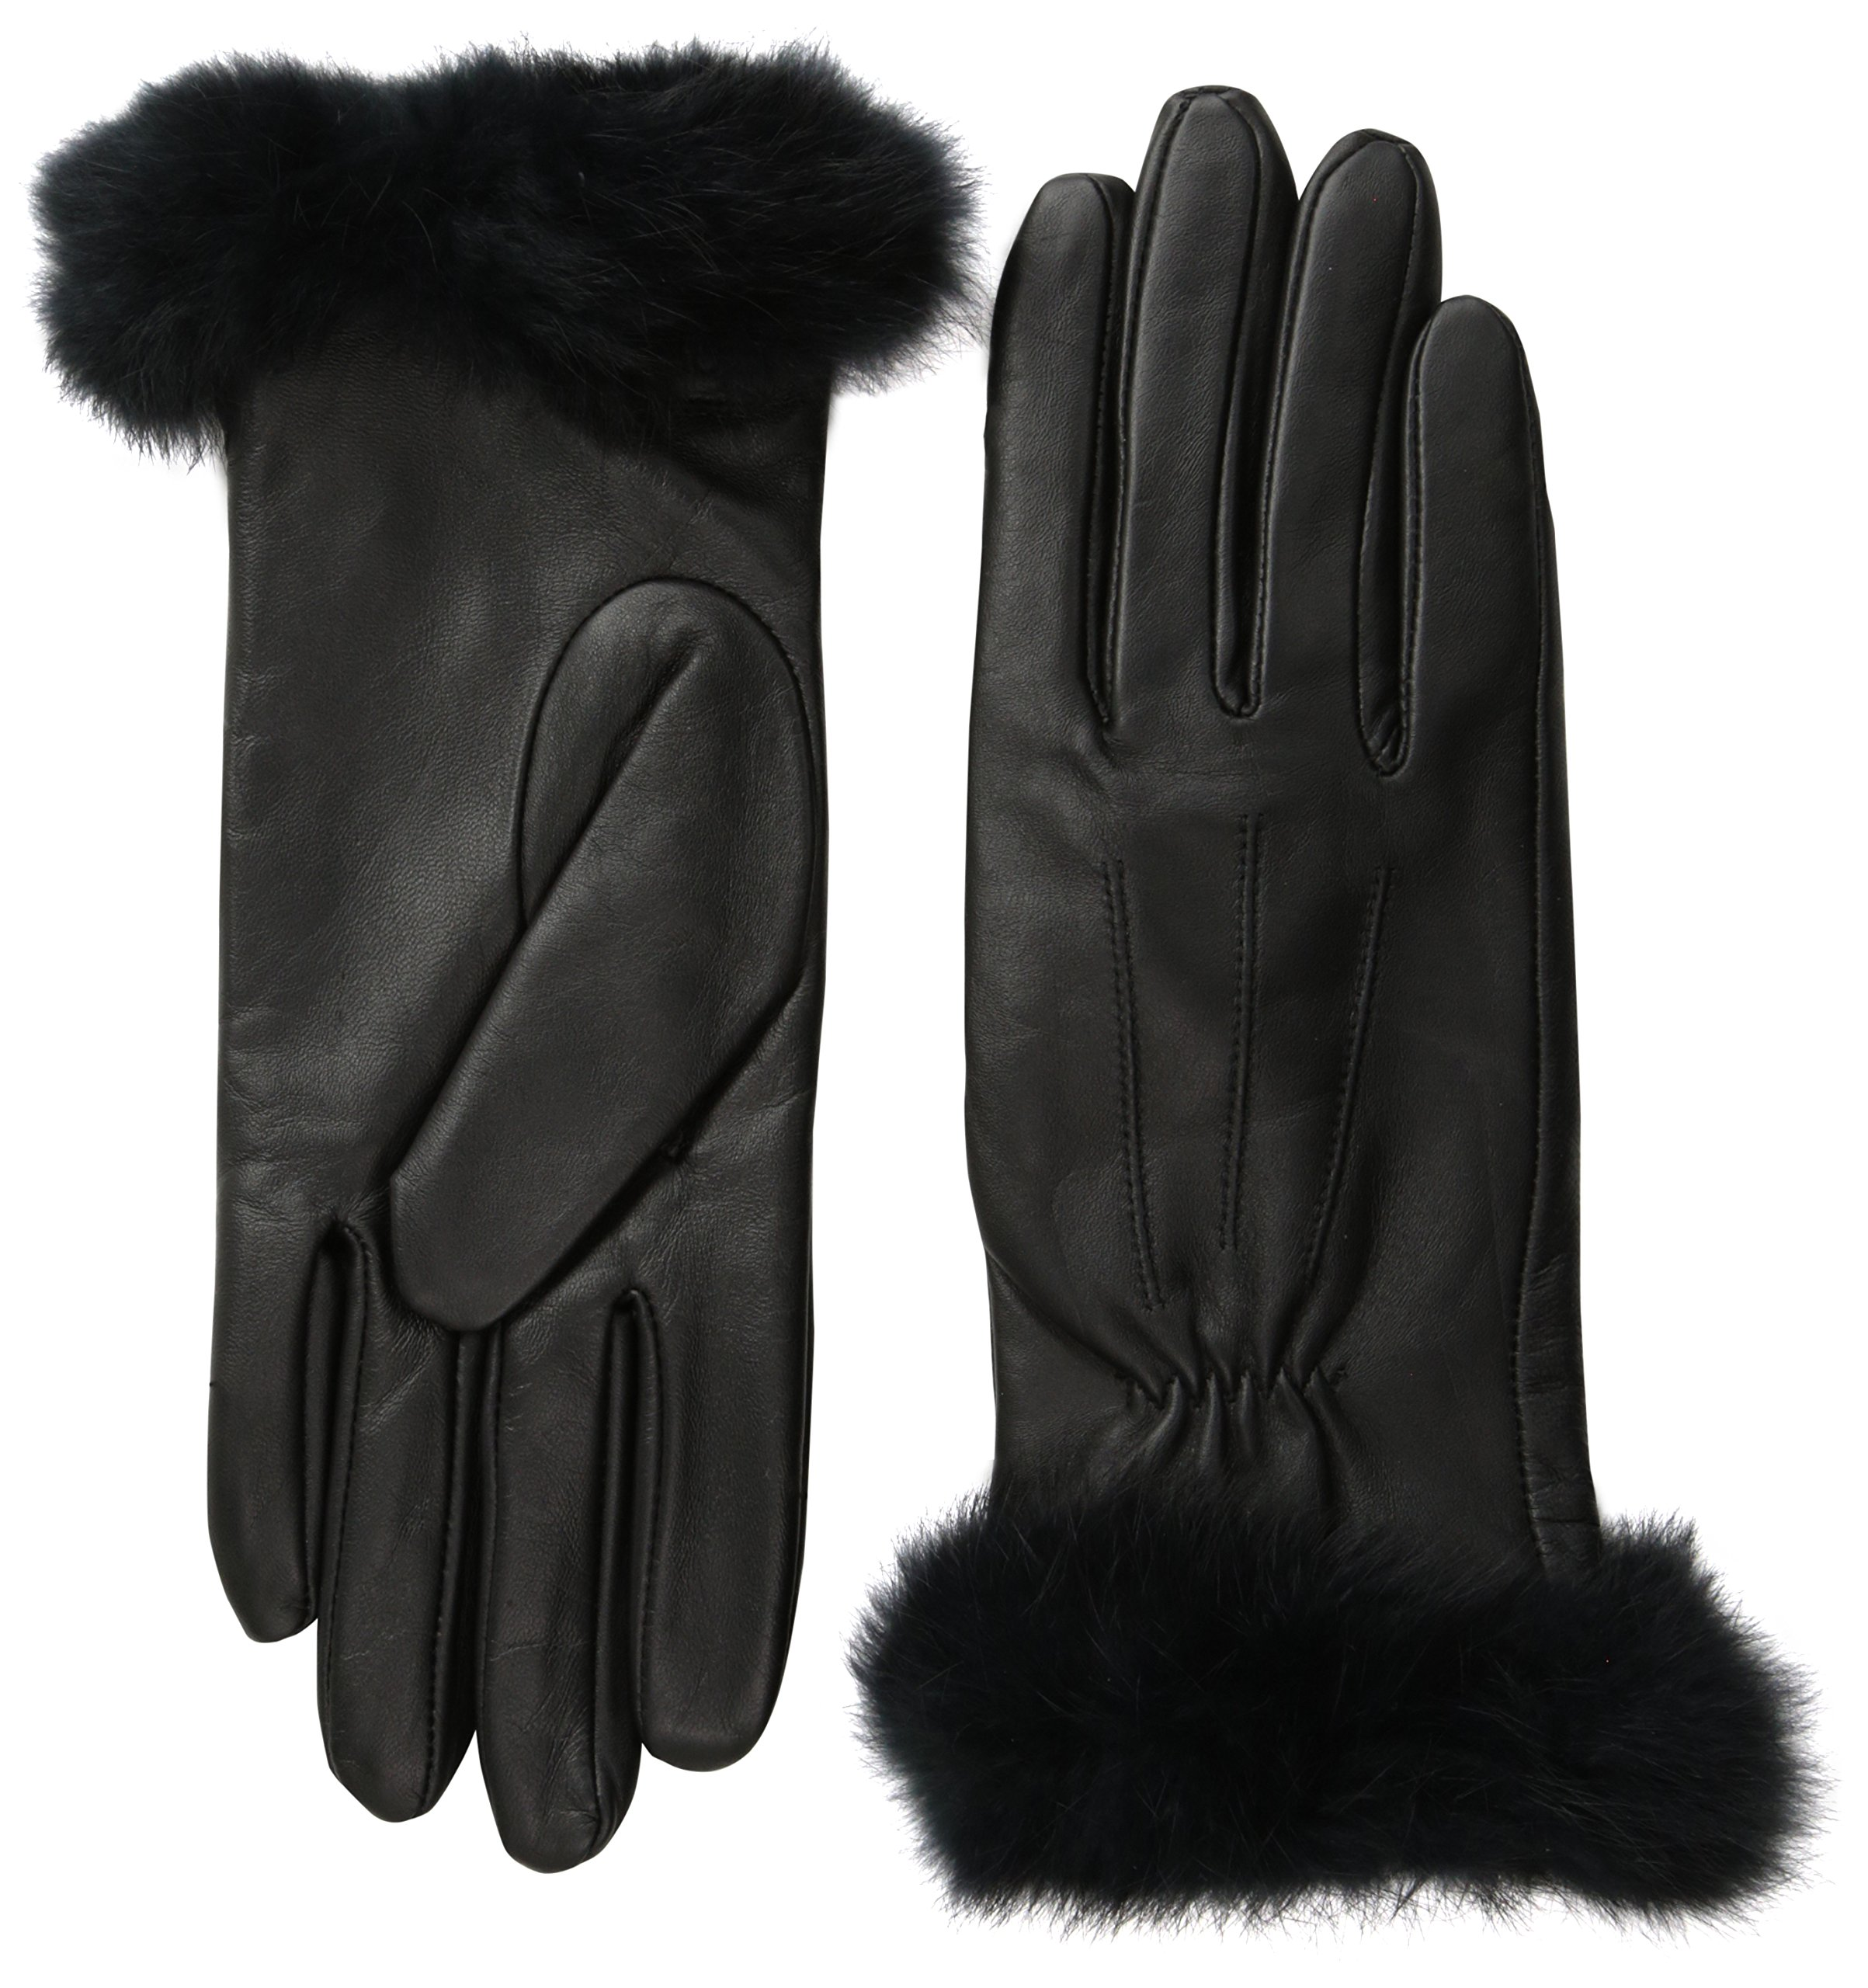 Glove.ly Women's Leather Gloves with Rabbit Fur, Black, Small